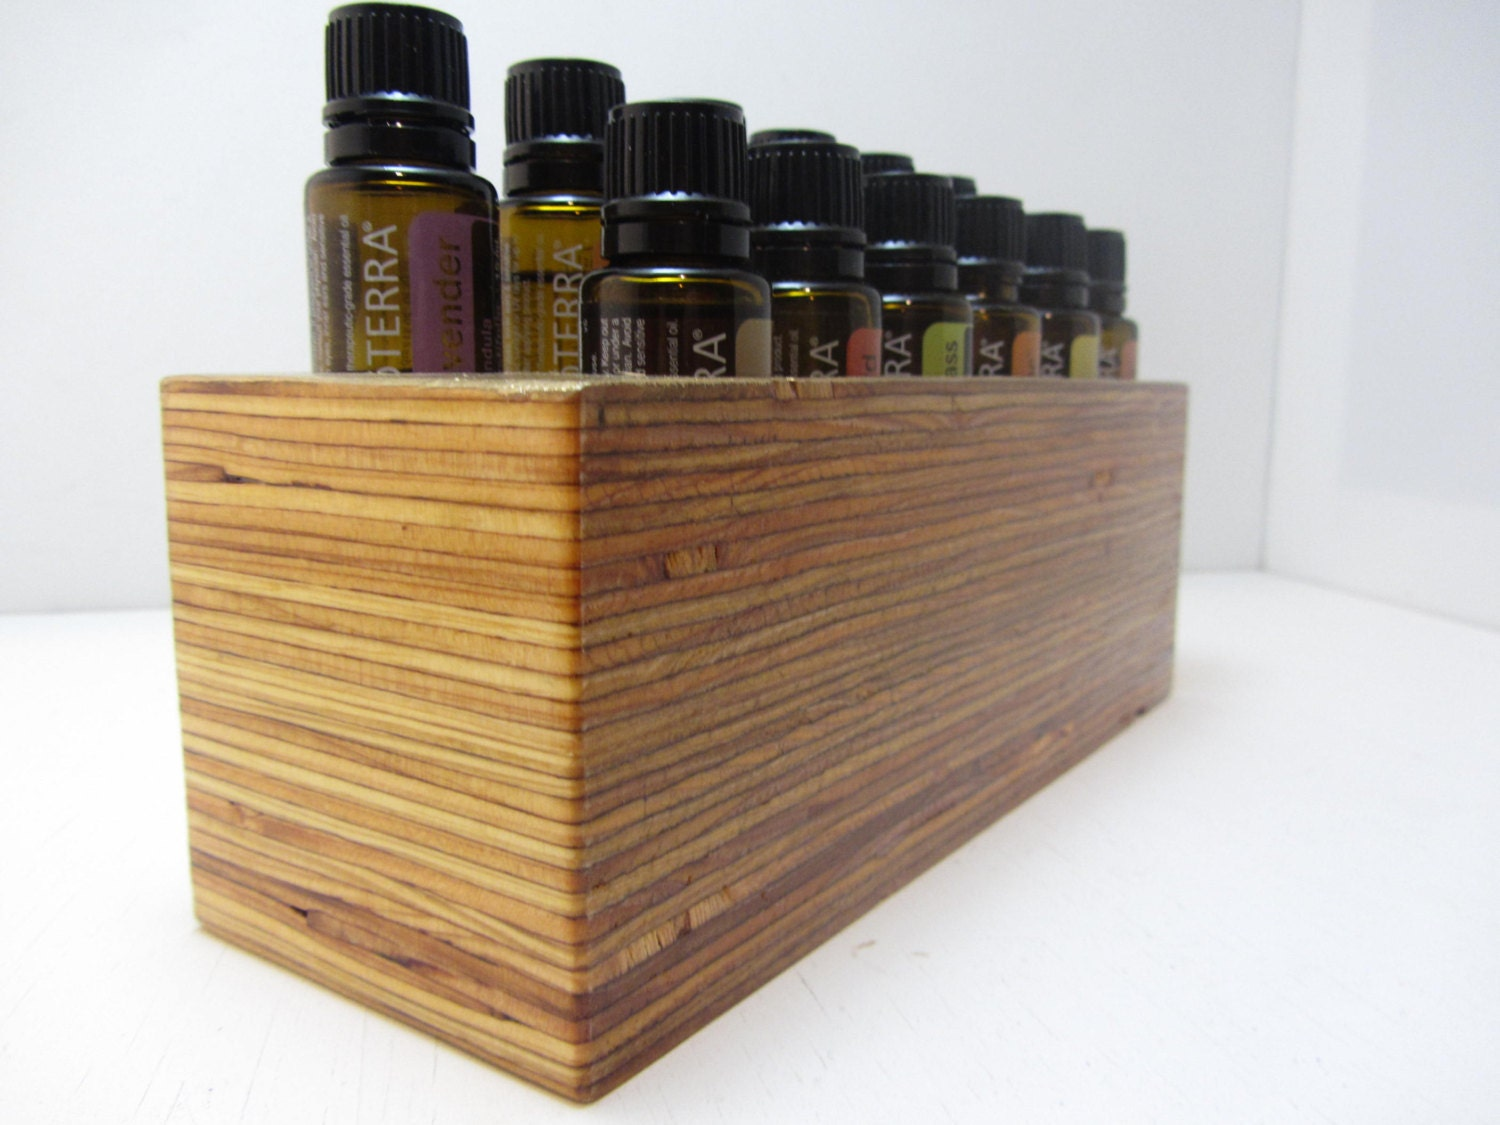 Marvelous photograph of Wood Layered Gold Top Essential Oil Holder Rack by Terraromarific with #9D782E color and 1500x1125 pixels